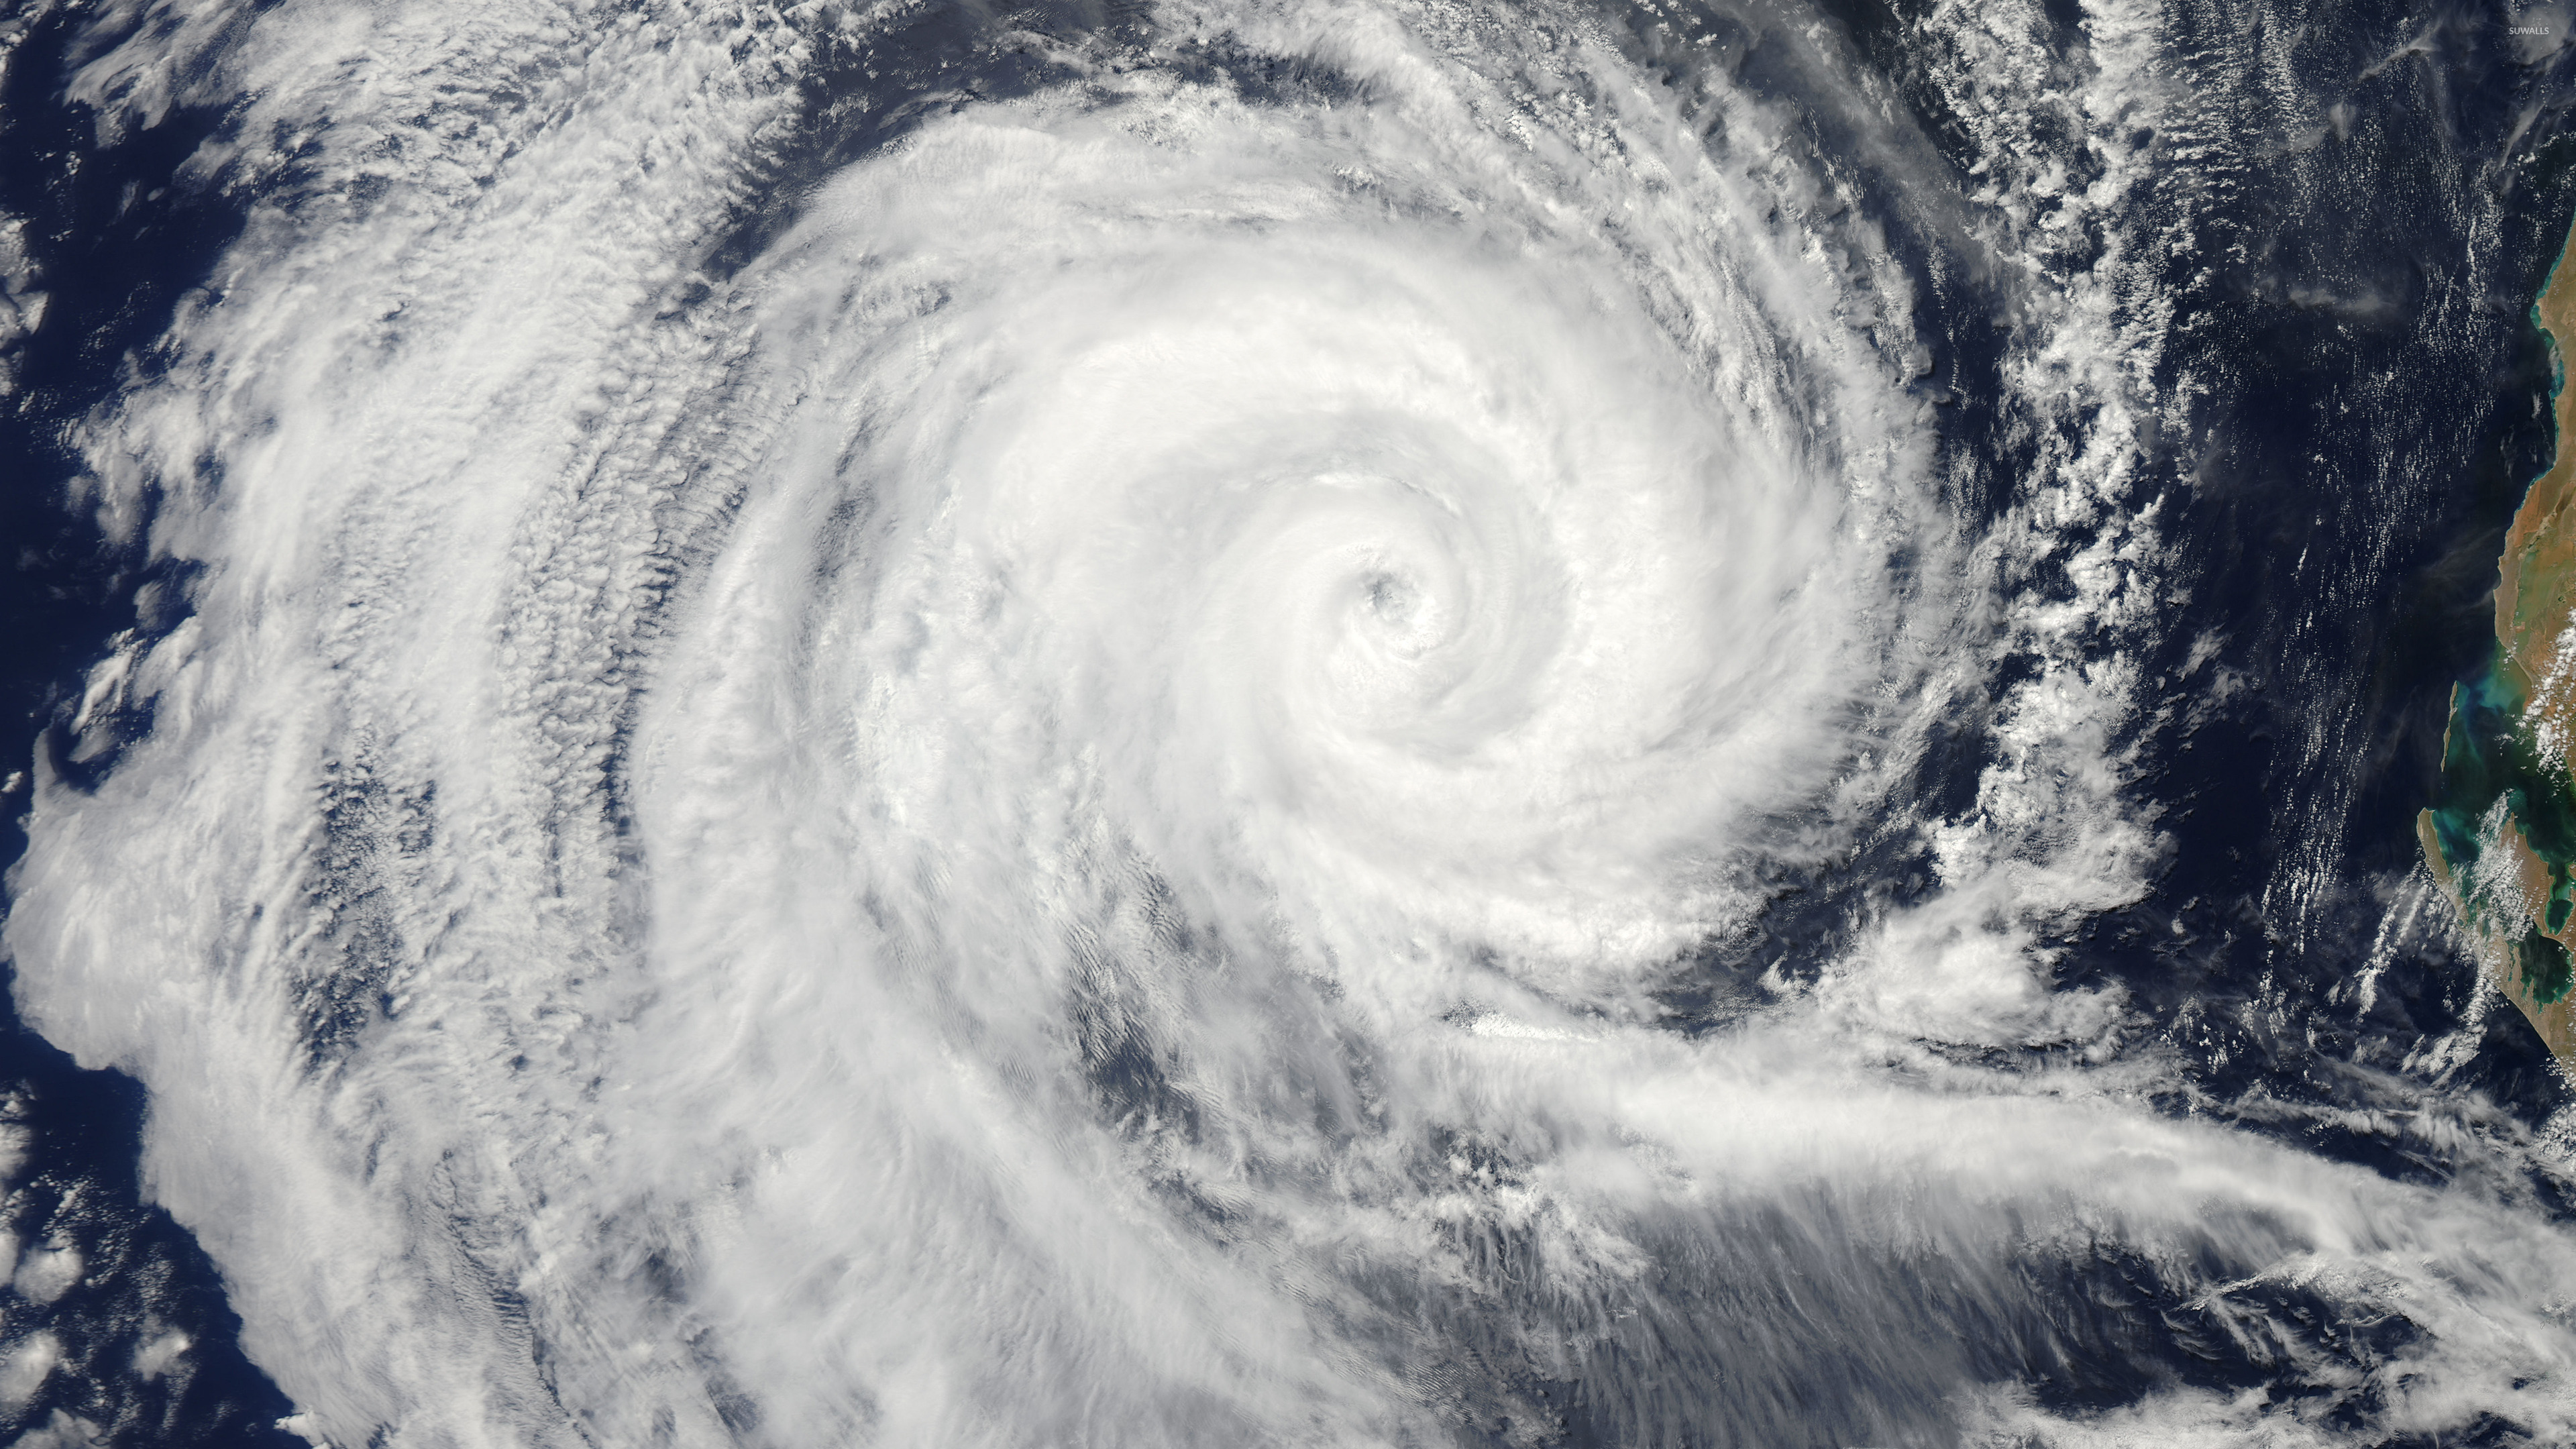 Tropical Cyclone Dianne wallpaper   Space wallpapers   44424 3840x2160